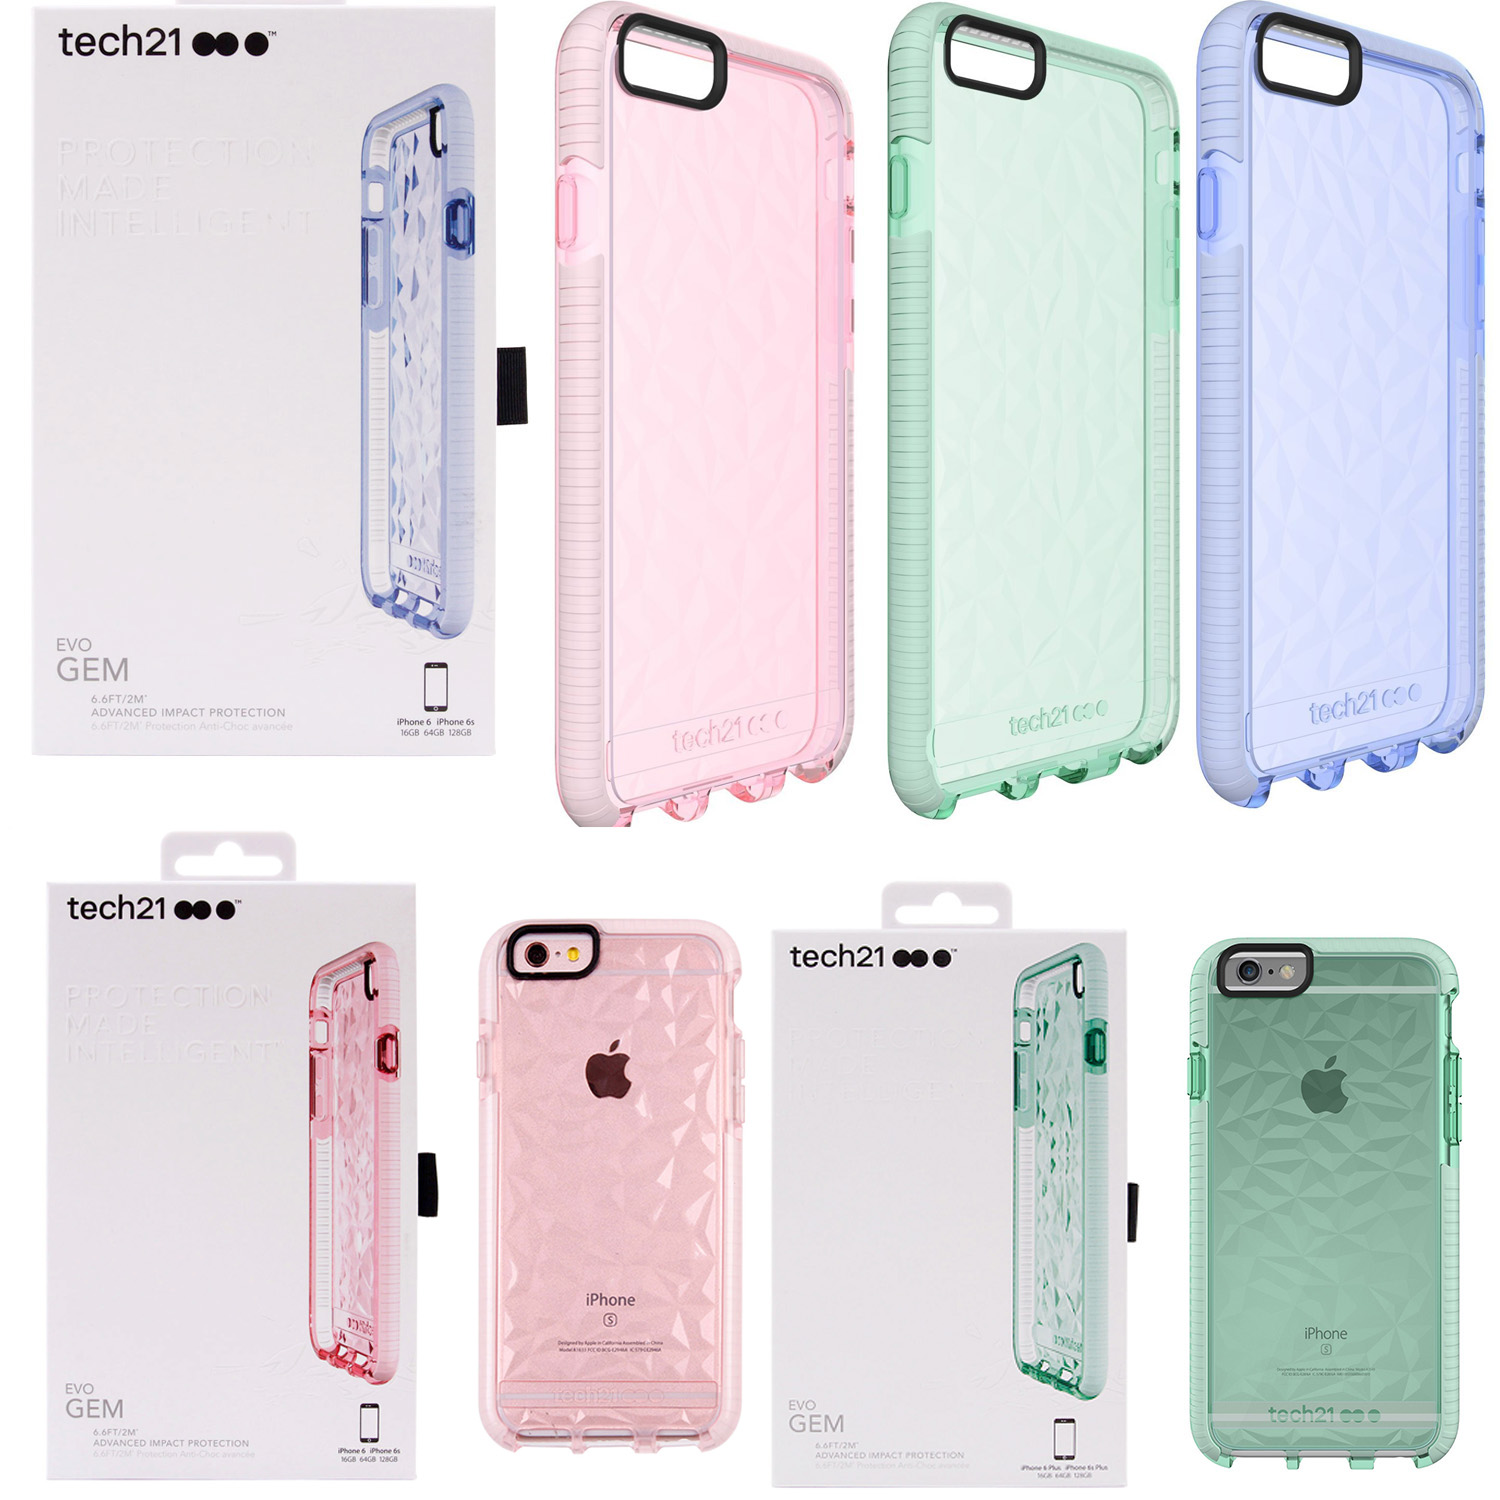 promo code 8563a 6c3f1 Details about Tech21 Evo Gem Bumper Protection Case for iPhone 6/6s, iPhone  6/6s Plus